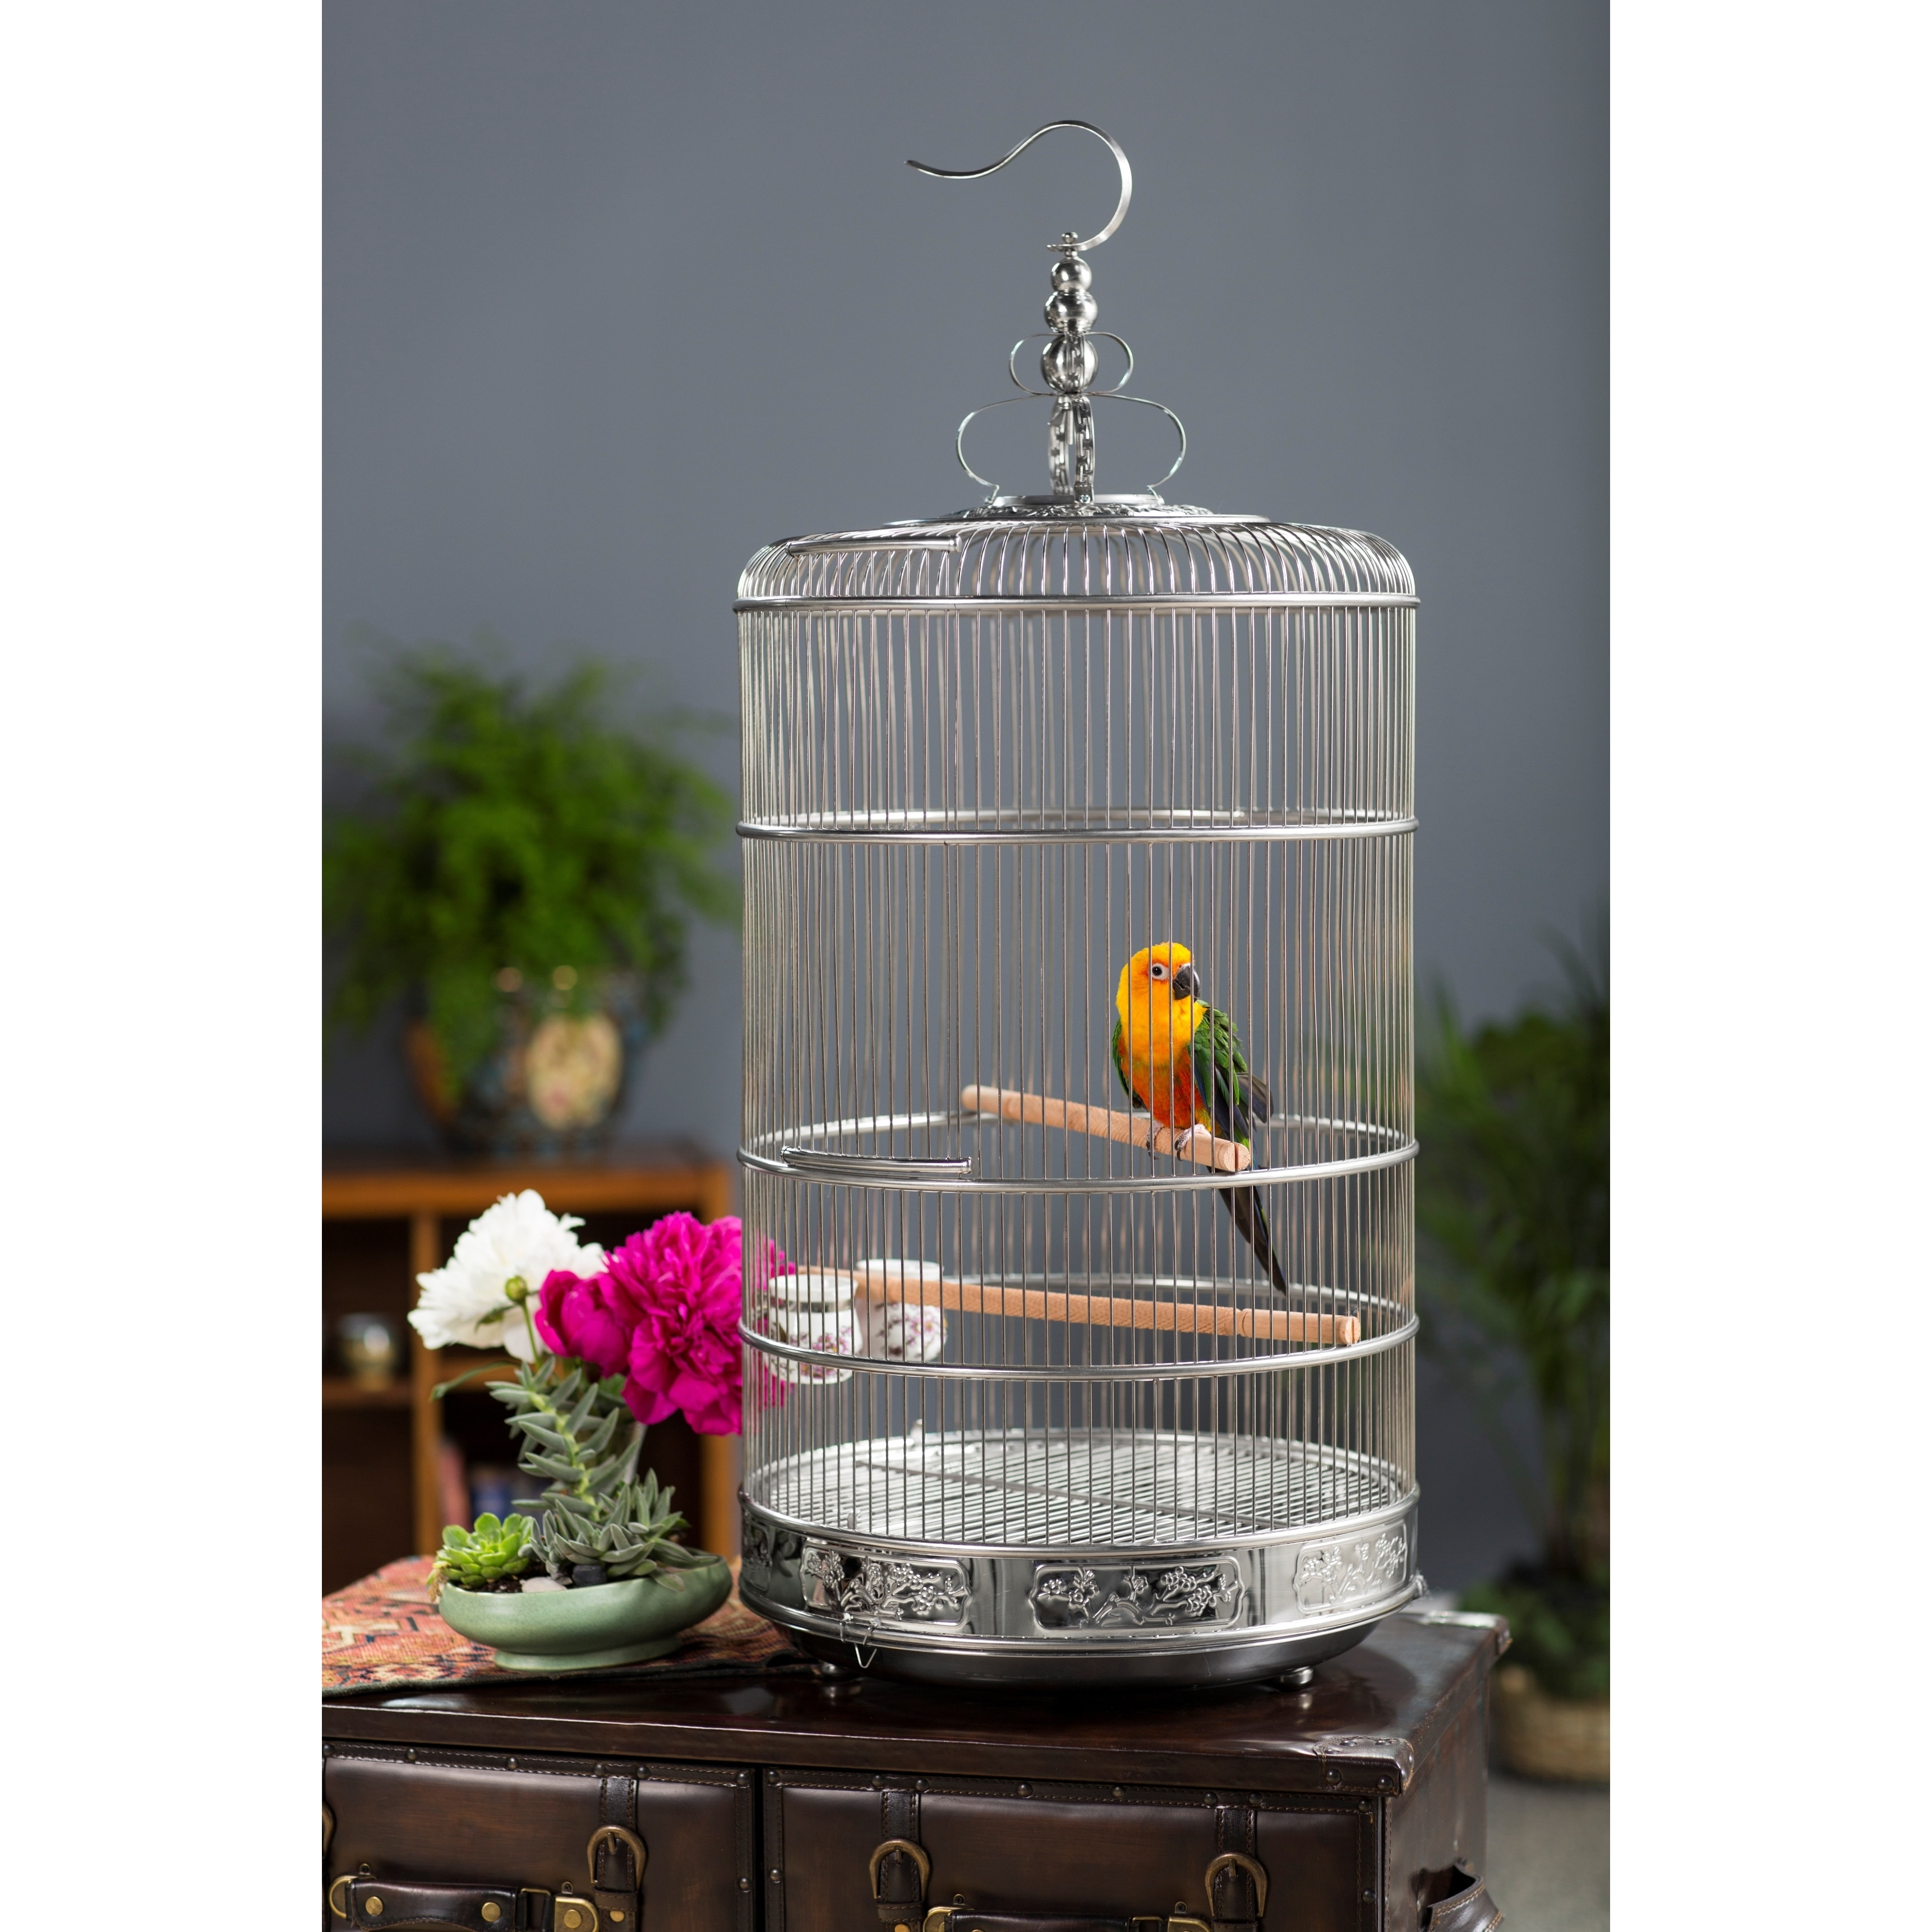 Prevue Pet Products Dynasty Bird Cage (Large), Silver